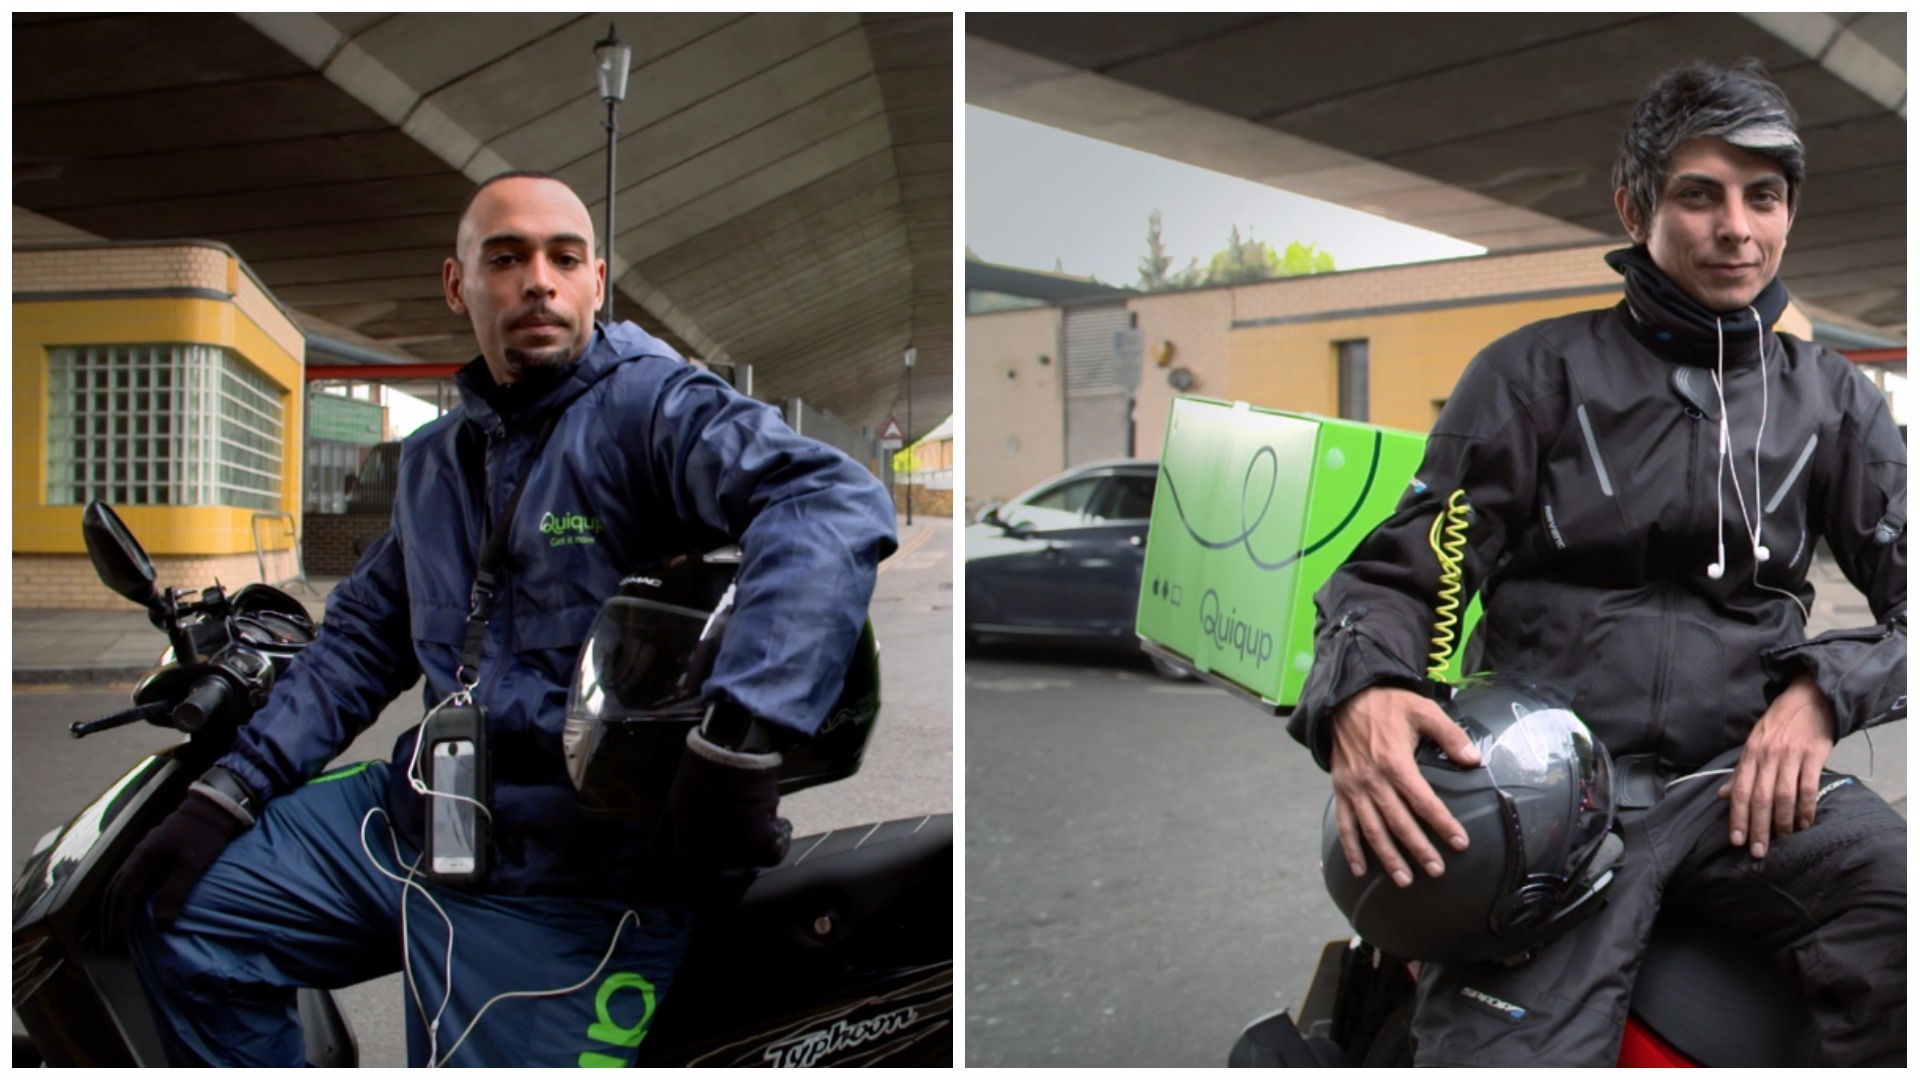 a collage of two deliverymen on  motorcyclists